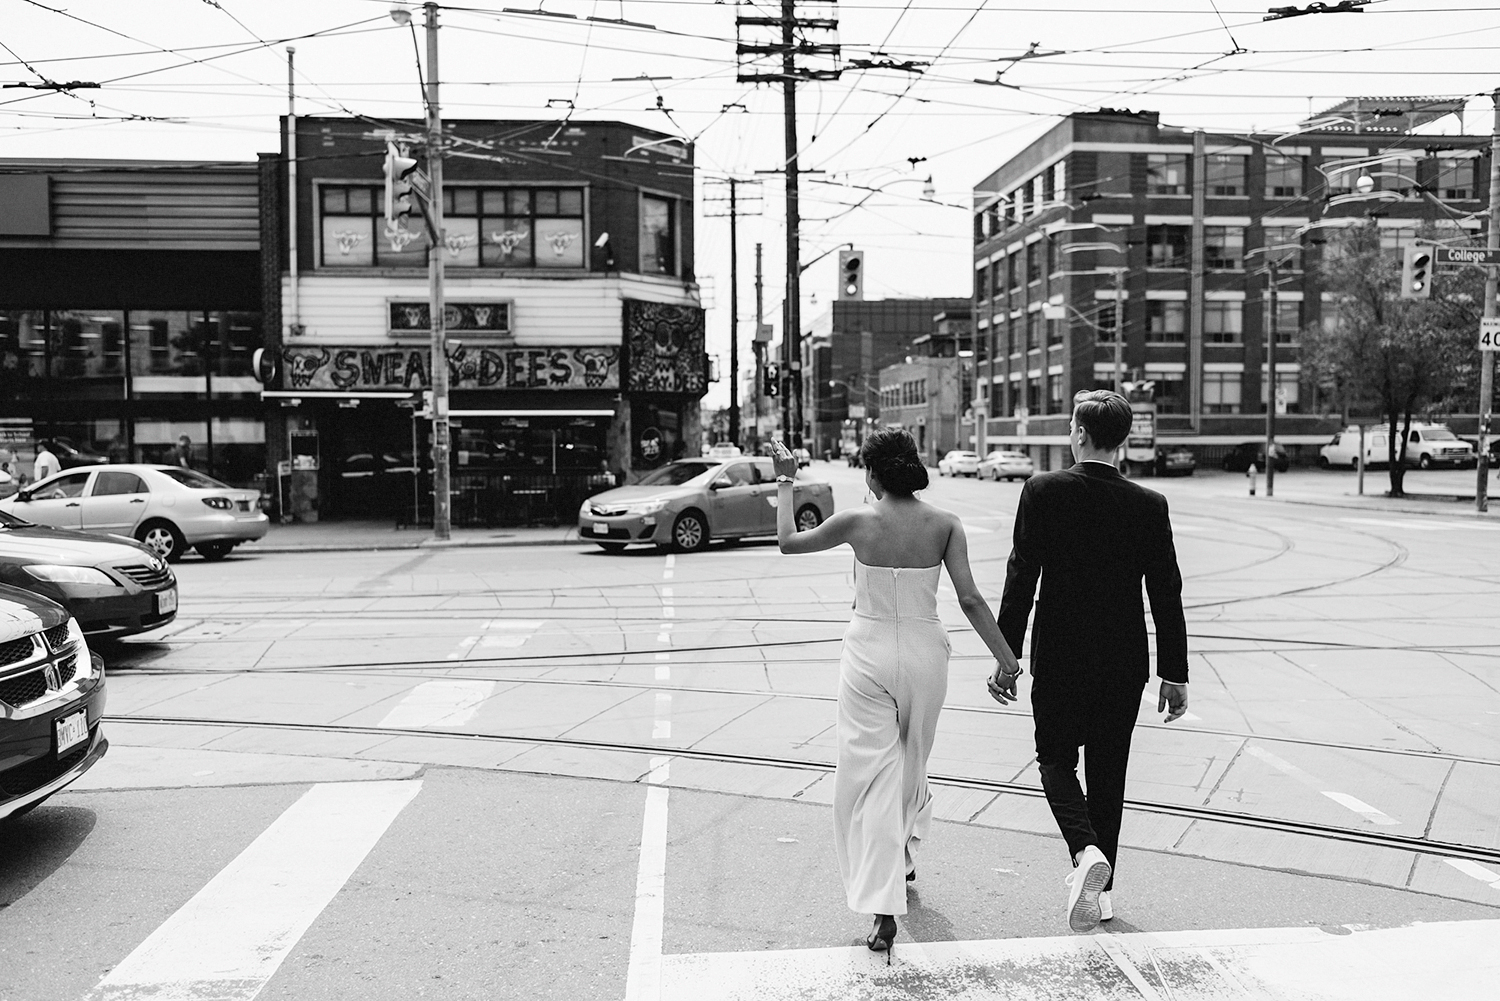 Intimate-Toronto-Pop-Up-Elopement-Downtown-Urban-film-analog-photography-toronto-wedding-photographers-alternative-hipster-bride-and-groom-badass-graffiti-cool-brides-jumpsuit-loversland-sneaky-dees-bar-photojournalistic-bw.jpg